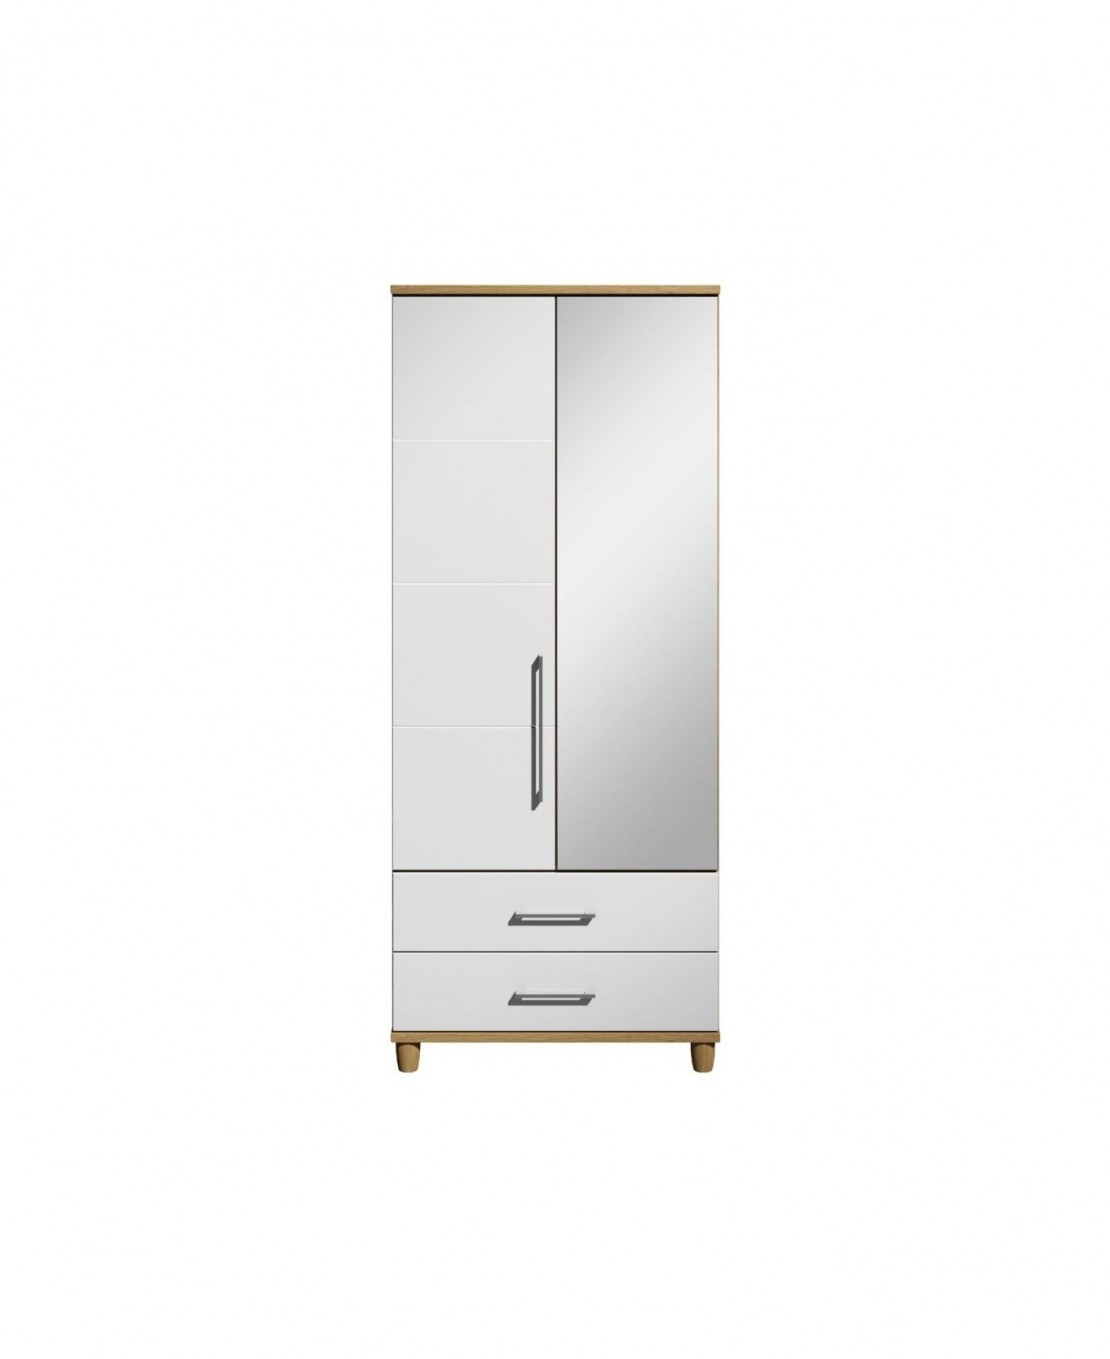 /_images/product-photos/kt-furniture-vardy-2-door-mirrored-gents-robe-white-a.jpg